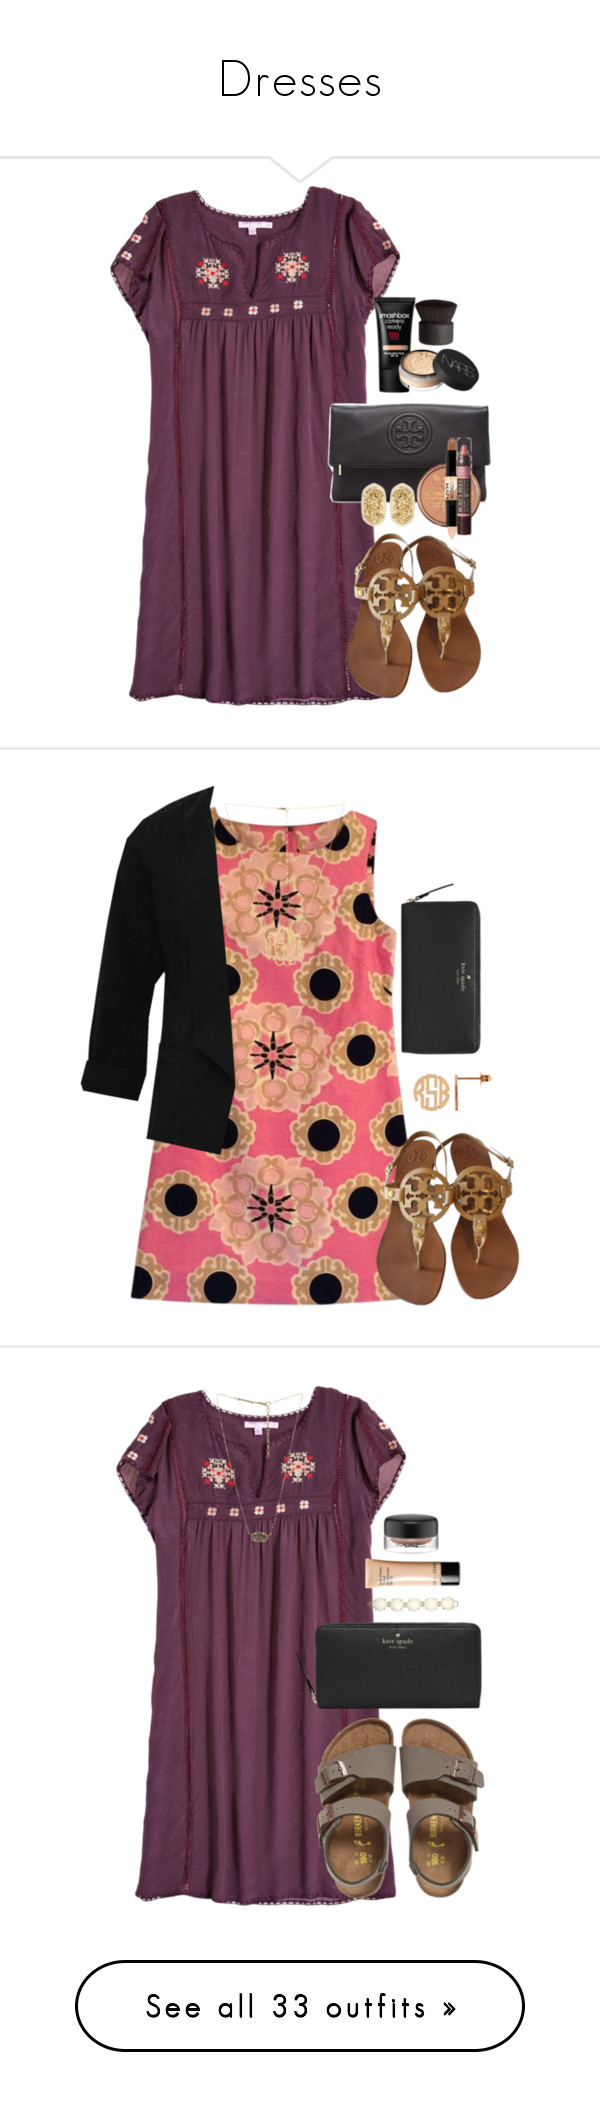 """""""Dresses"""" by liliannalol ❤ liked on Polyvore featuring Calypso St. Barth, Tory Burch, Rimmel, NYX, Burt's Bees, Kendra Scott, Smashbox, NARS Cosmetics, Lilly Pulitzer and M&Co"""